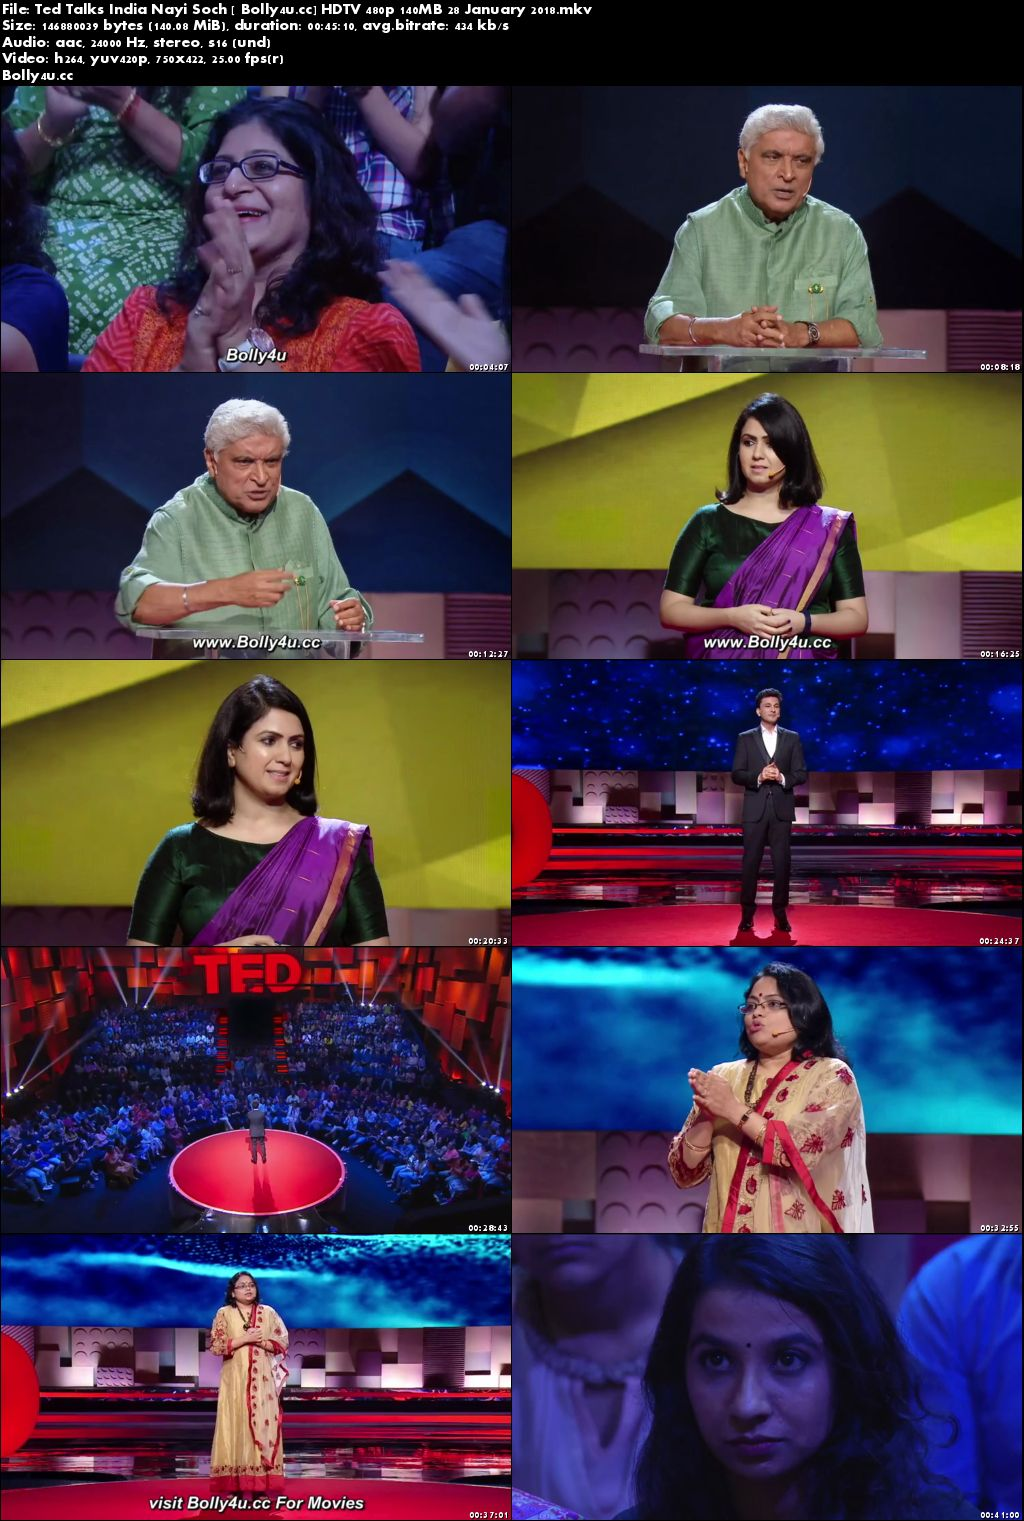 Ted Talks India Nayi Soch HDTV 480p 140MB 28 January 2018 Download